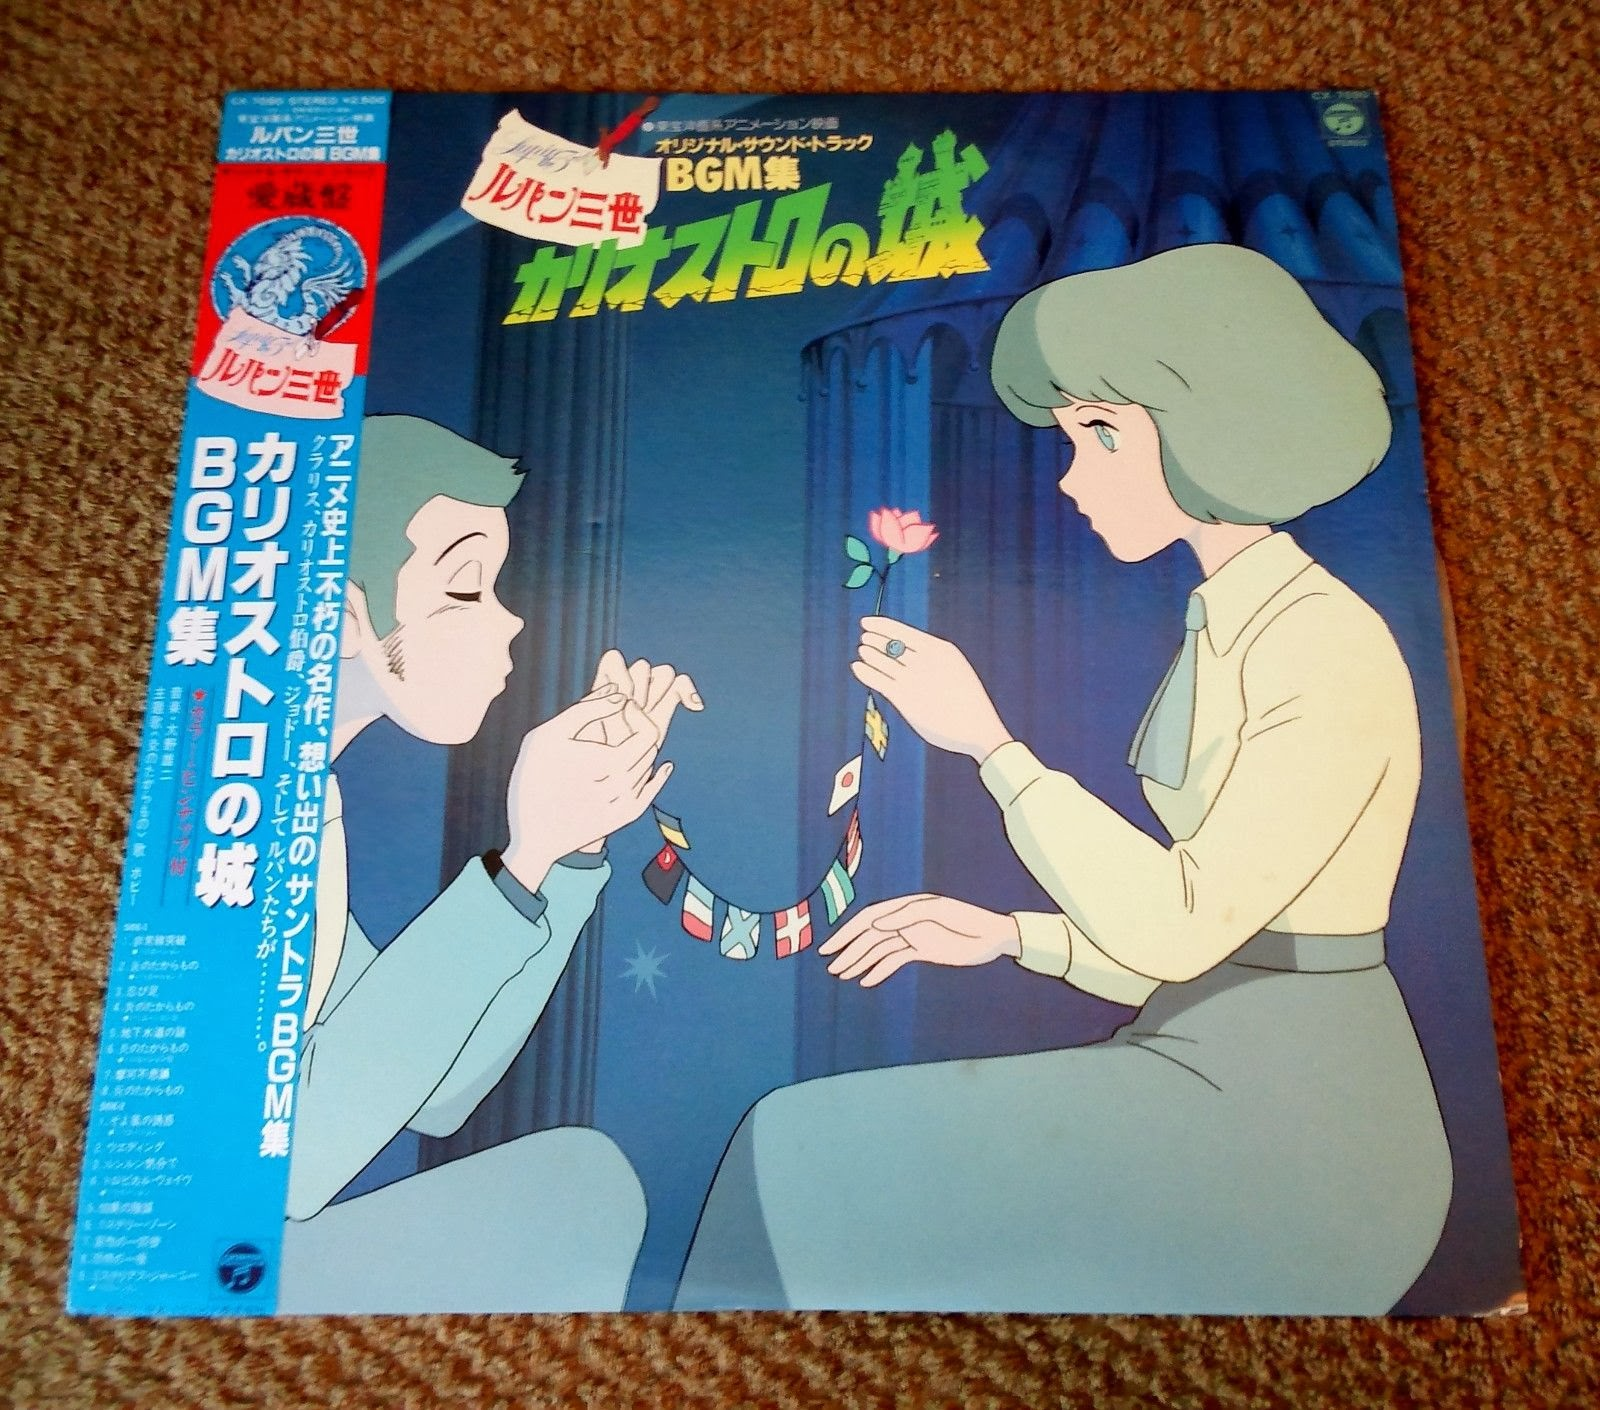 Lupin the 3rd: Castle of Cagliostro Soundtrack LP